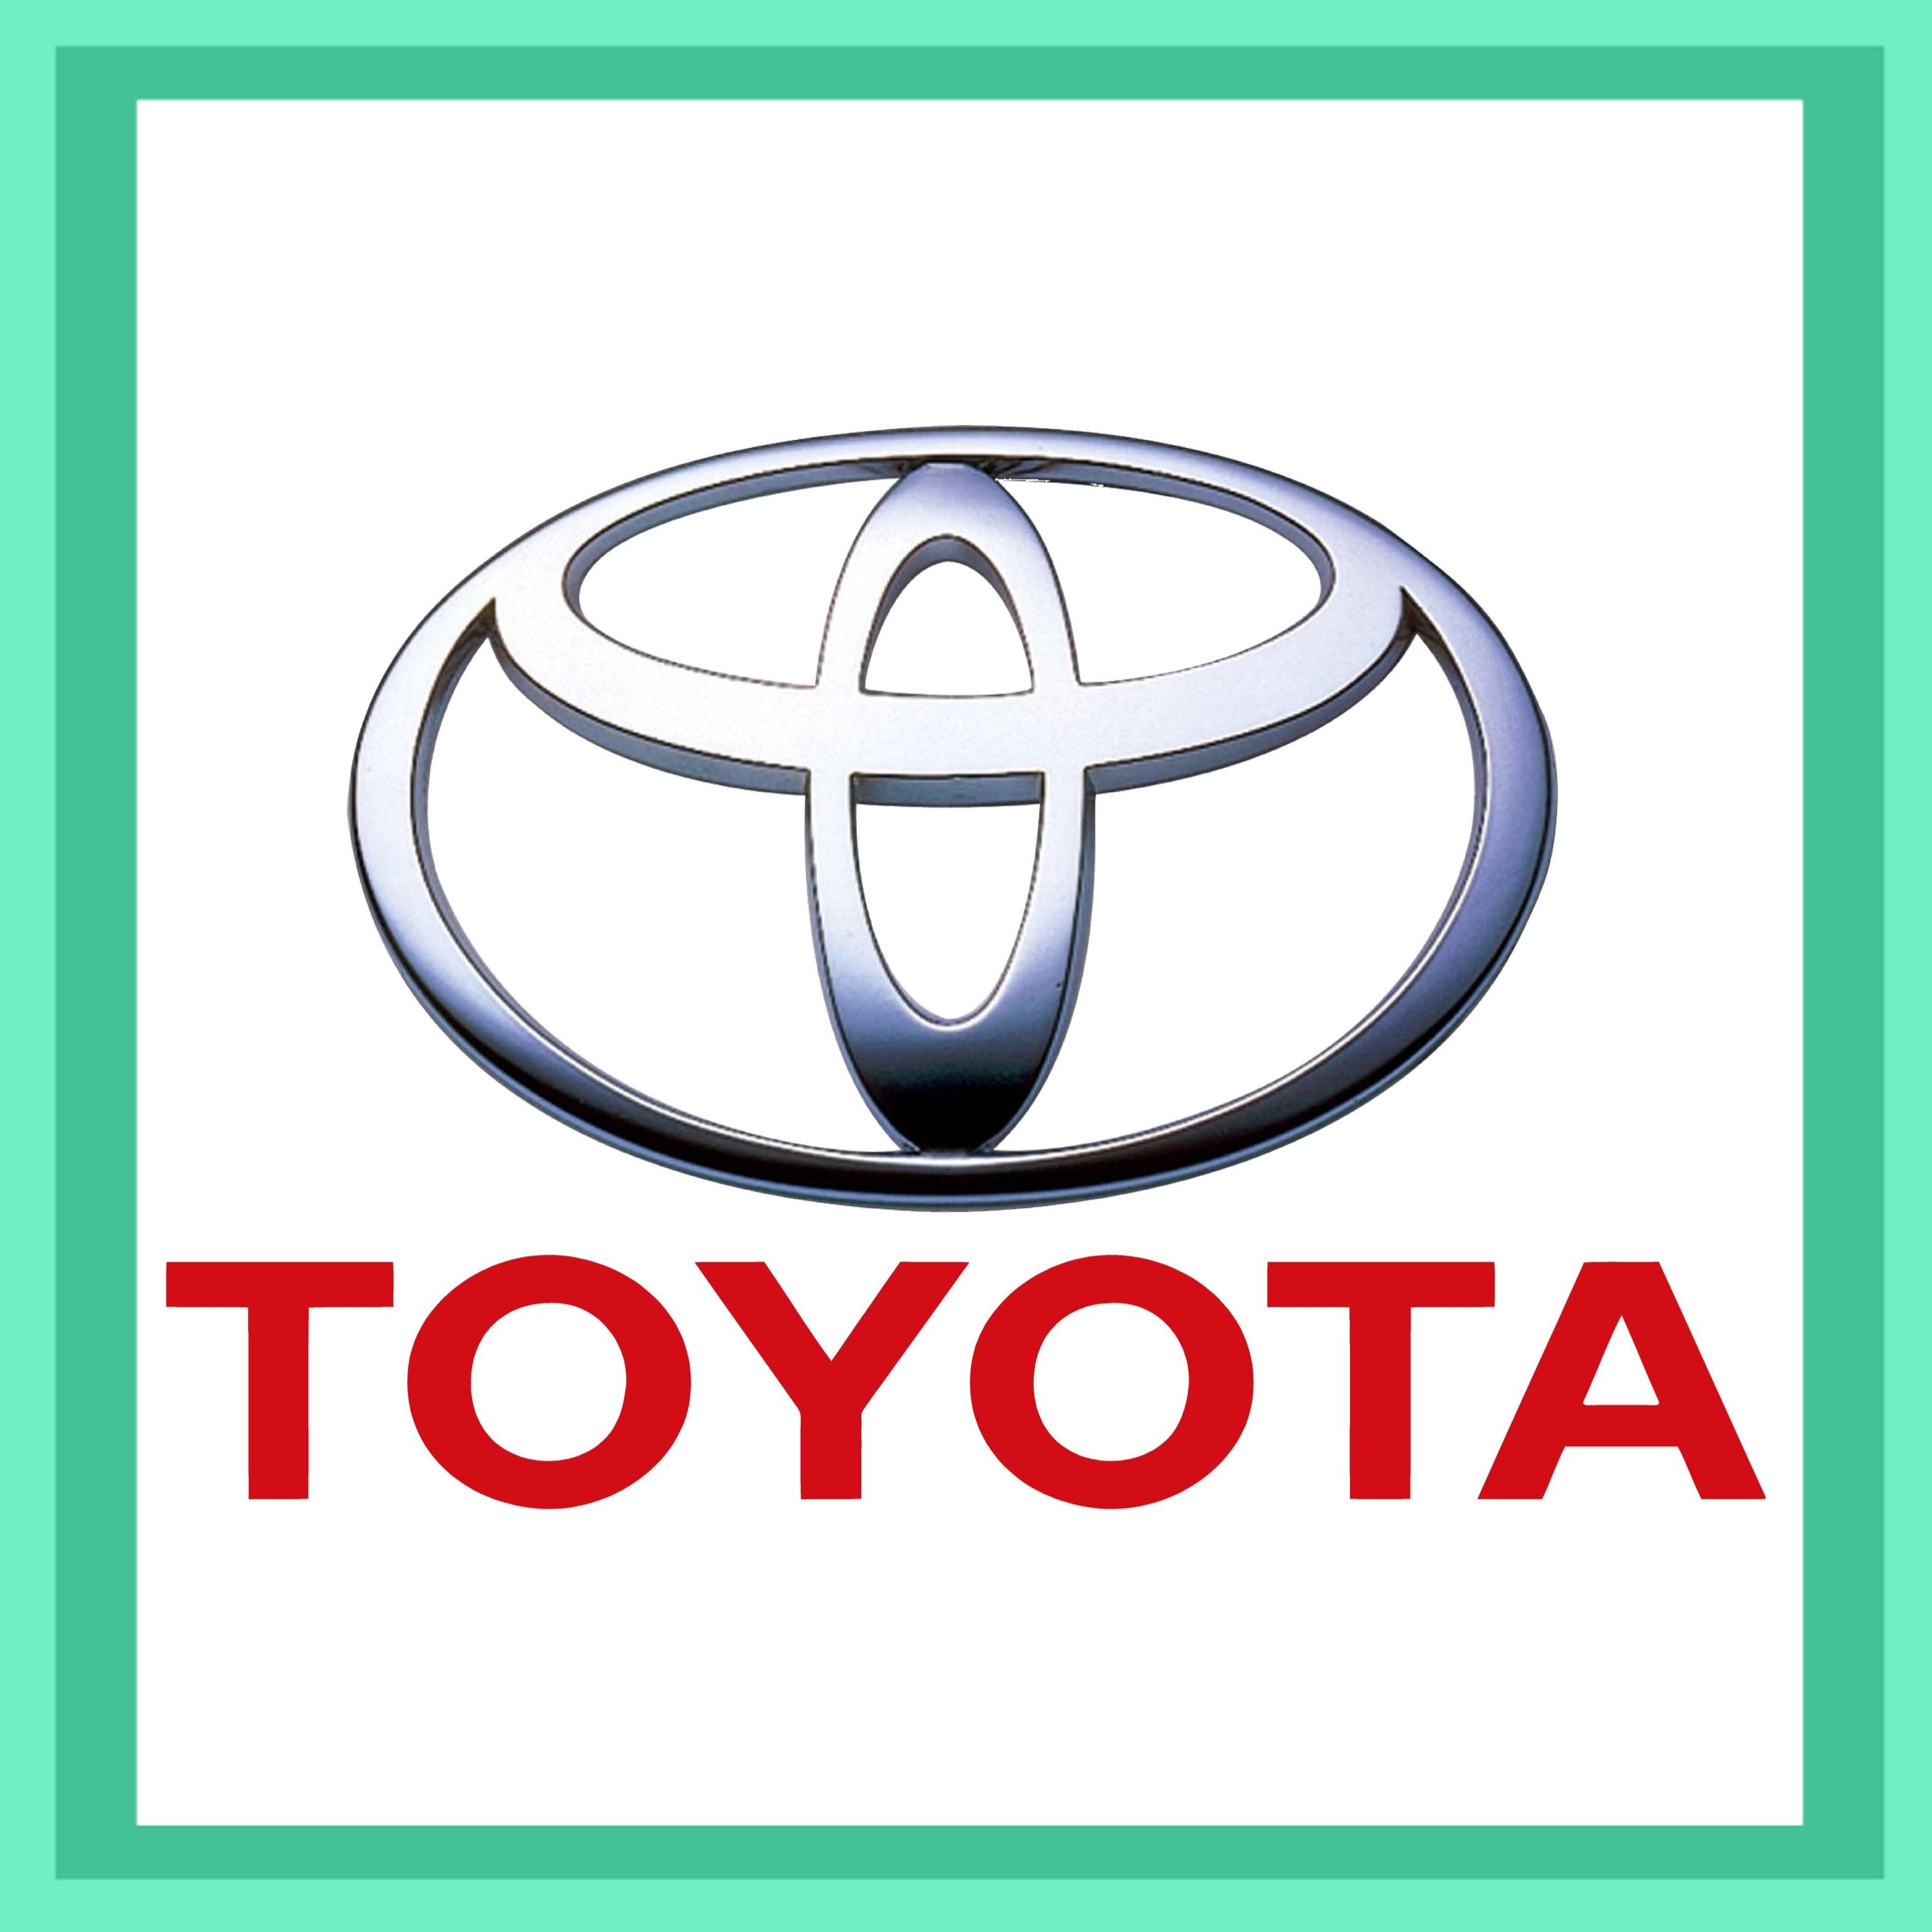 toyota in 2009 In 2009, toyota accelerator pedals began mysteriously getting stuck, at times  trapping panicked drivers in out-of-control cars that tragically.